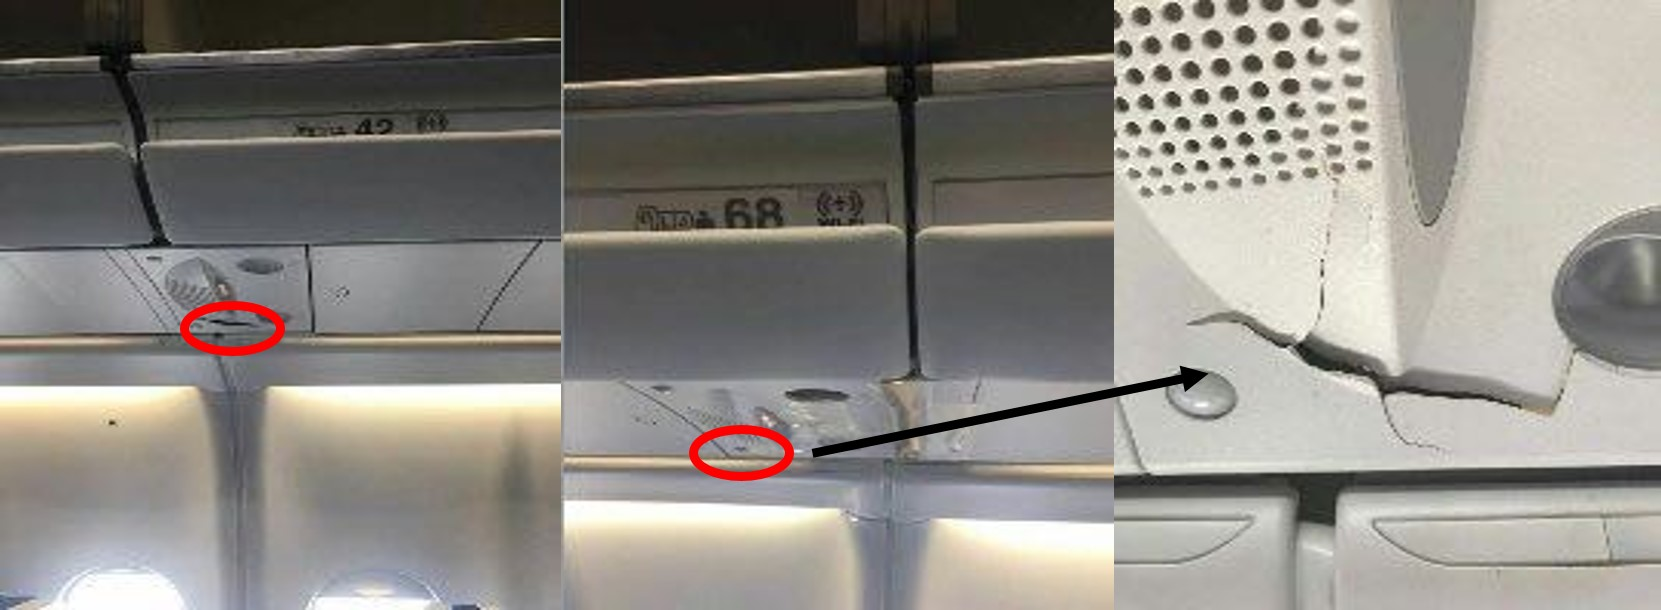 Figure 1: Damage to cabin (row 42, and 68 passenger service unit)Figure 1: Damage to cabin (row 42, and 68 passenger service unit)